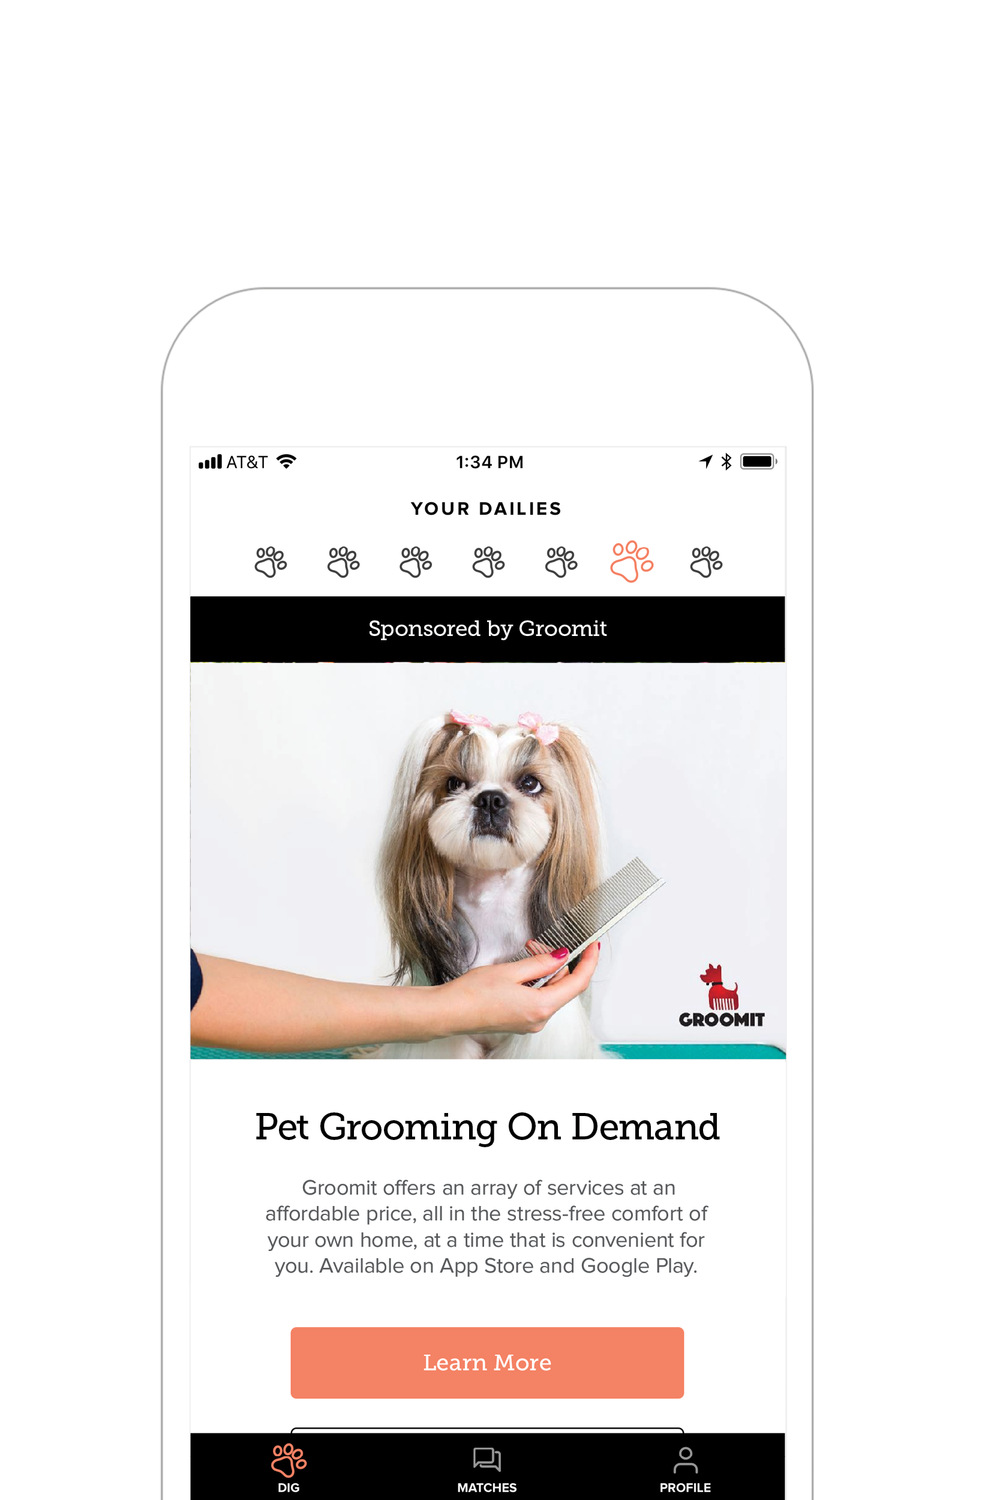 daily deals - Grass to pee on inside, funky dog tags and funny costumes. Grooming services that come to you. Volunteer opportunities! Learn about products and businesses that you and your pup will love.